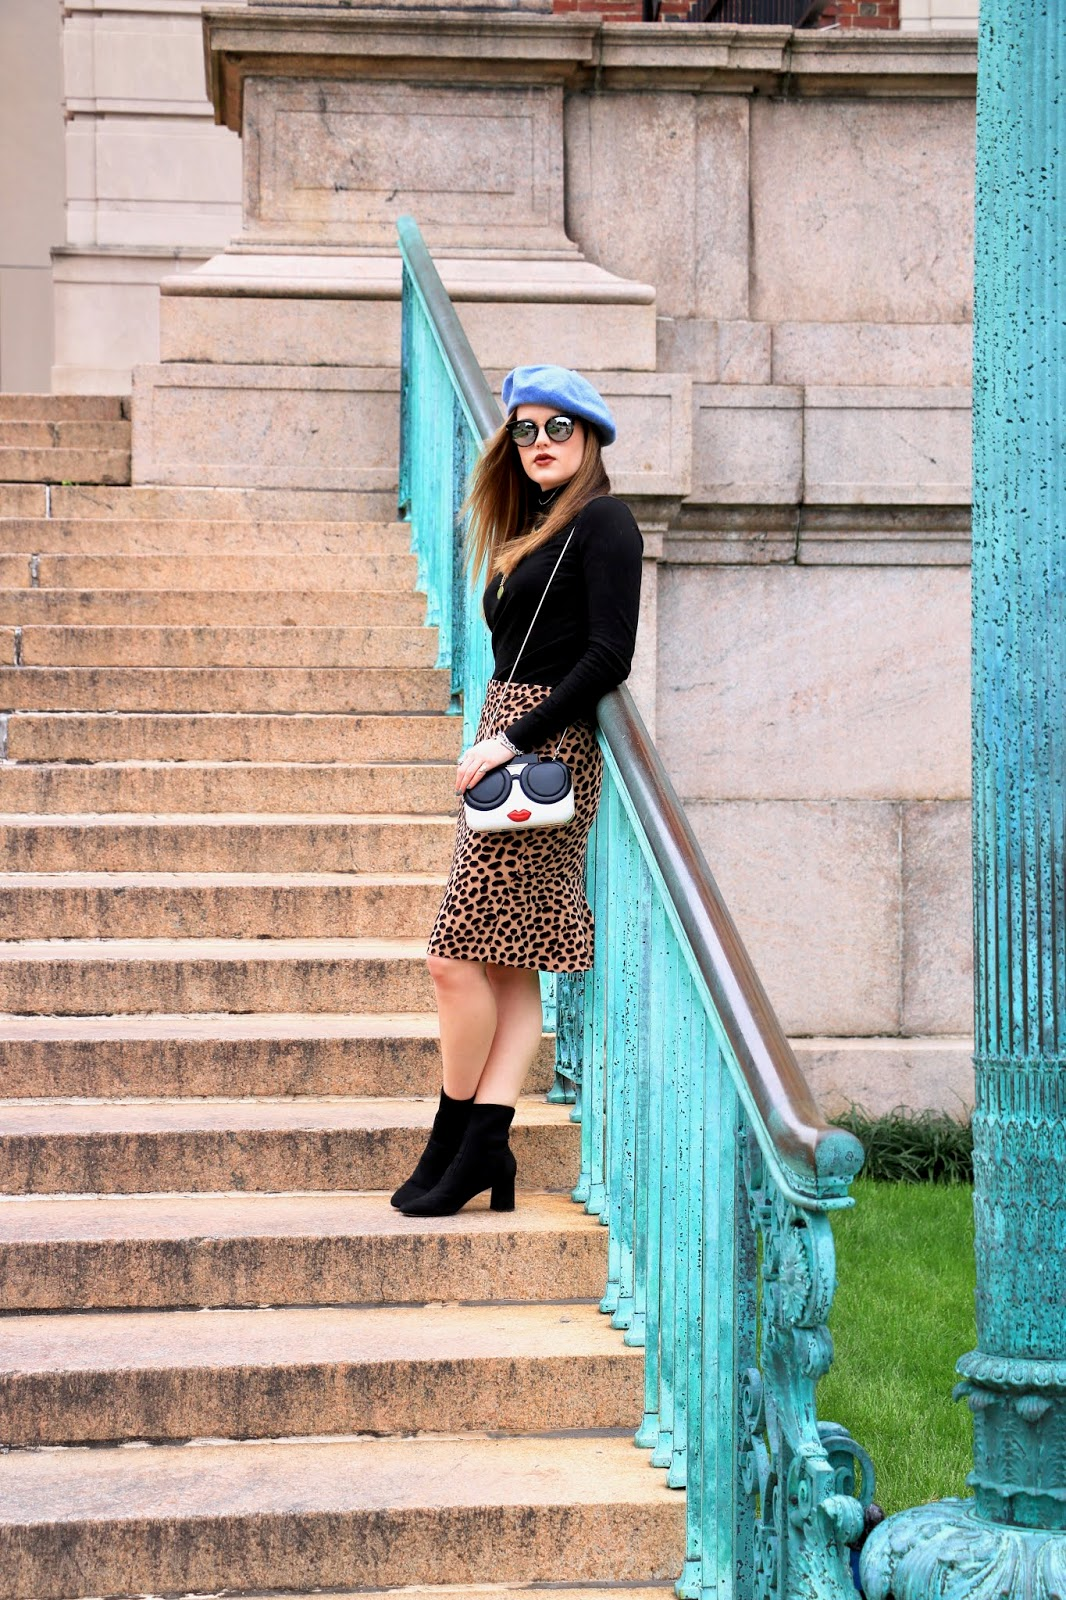 Nyc fashion blogger Kathleen Harper showing how to wear a leopard skirt